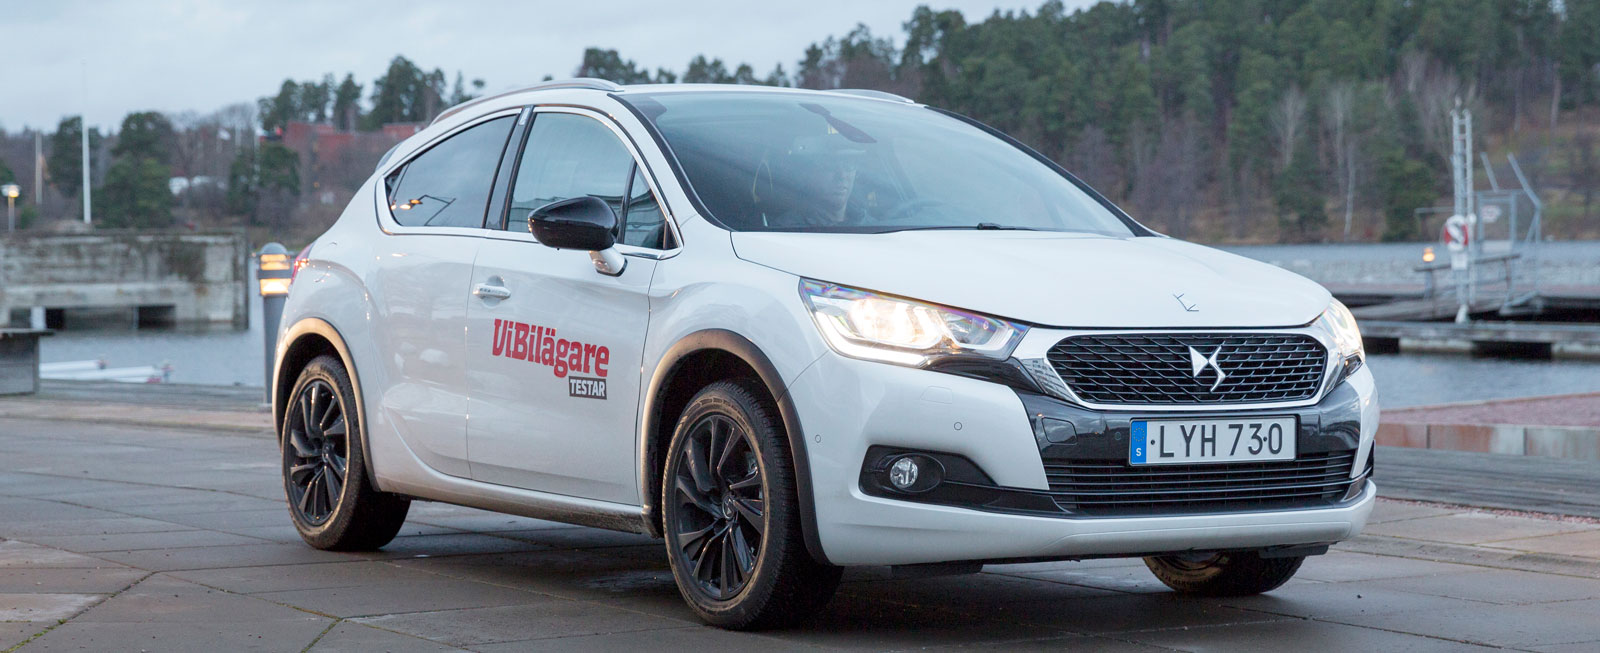 DS 4 Crossback 1,6 HDI 120 Auto